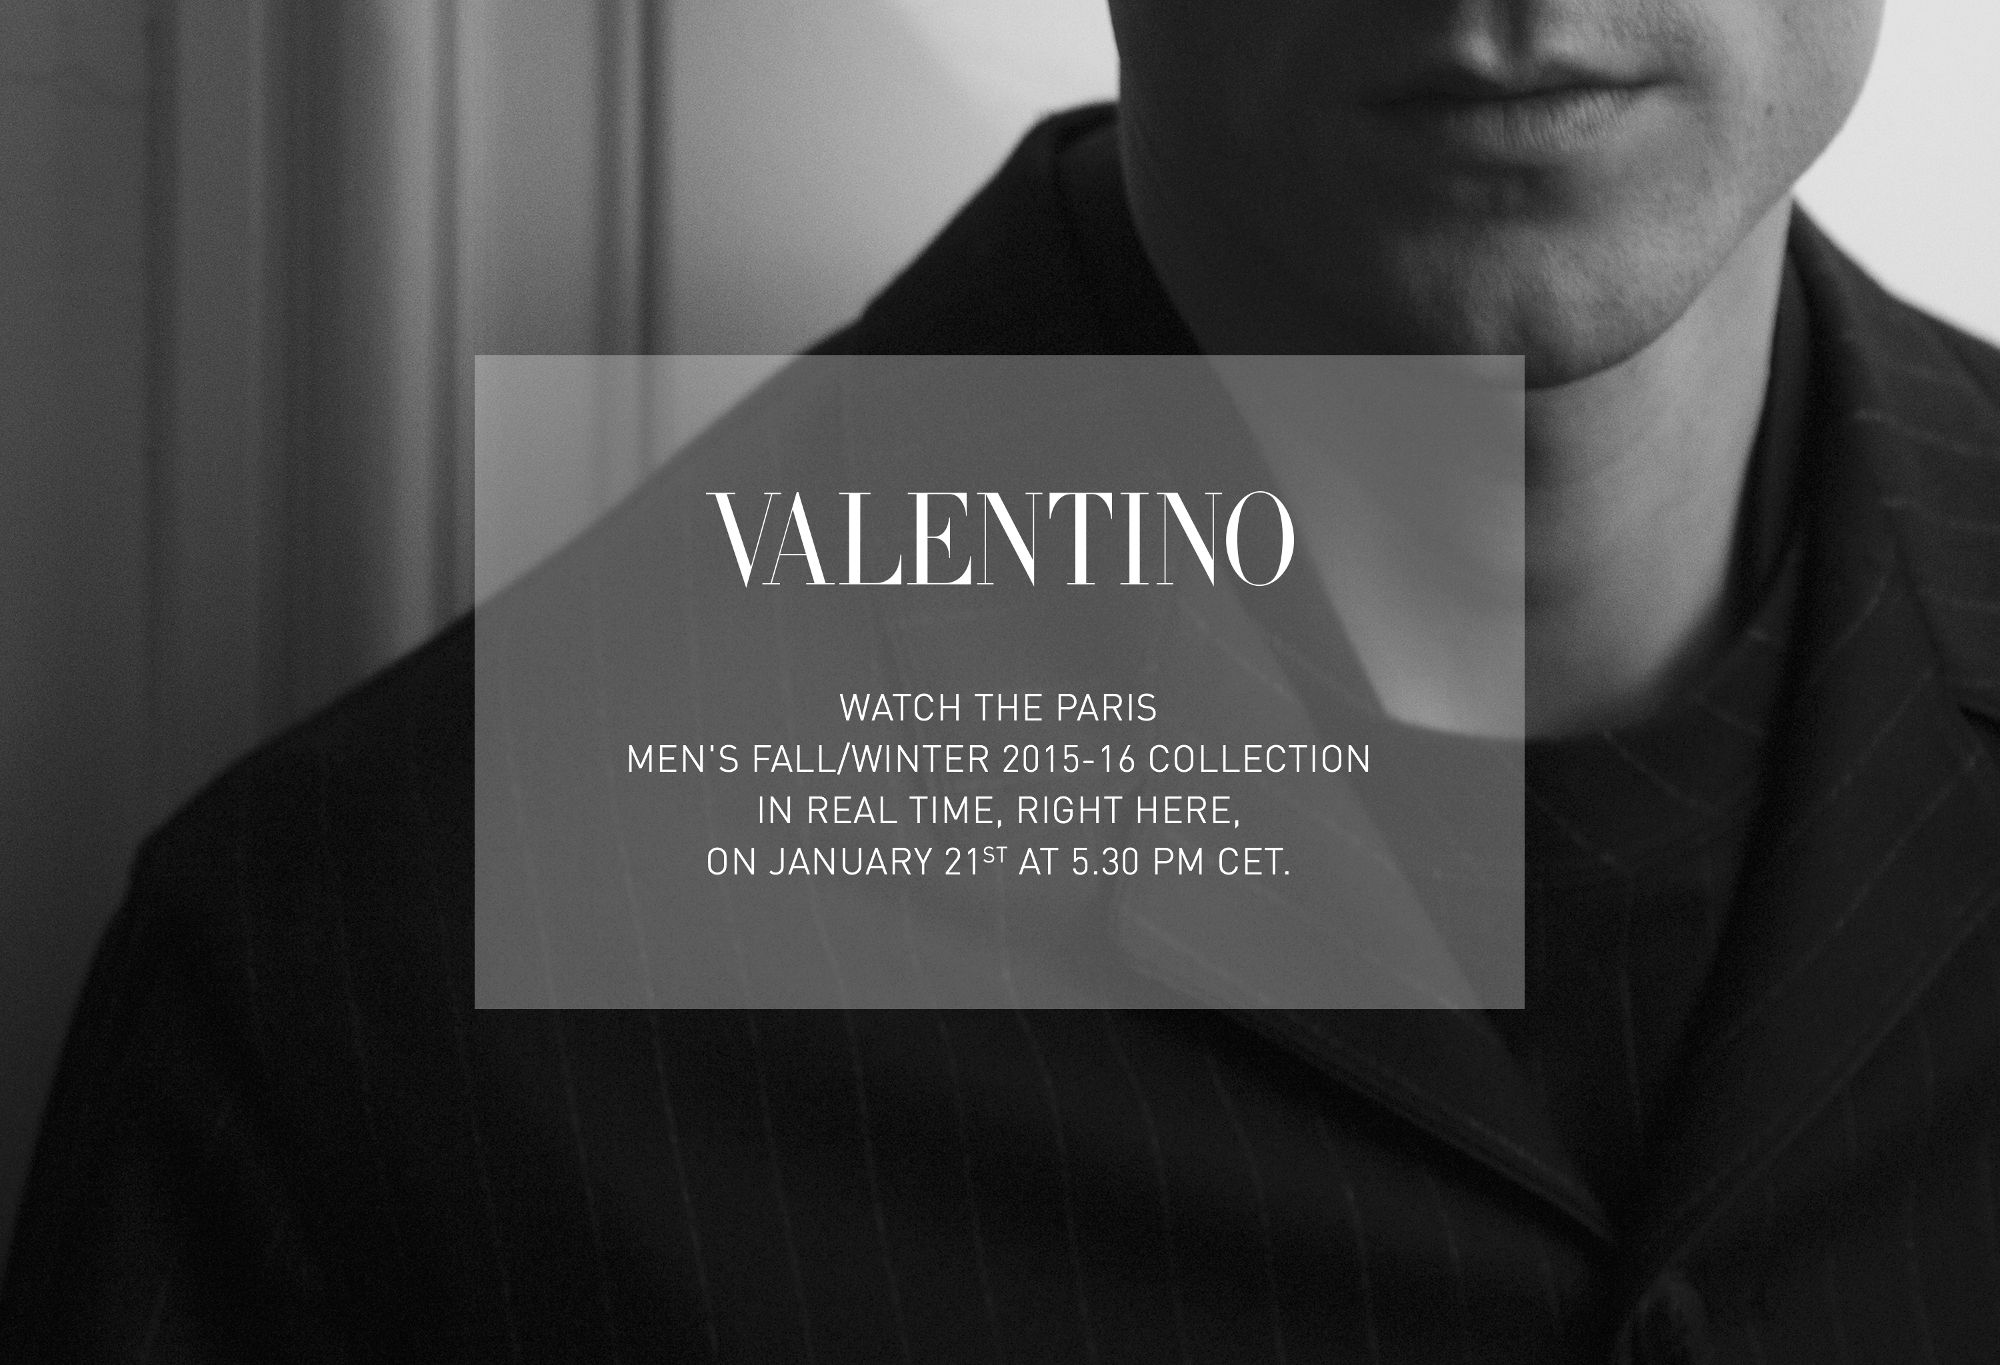 Valentino Fall Winter 2015-16 Men's Fashion Show Live Streaming Paris